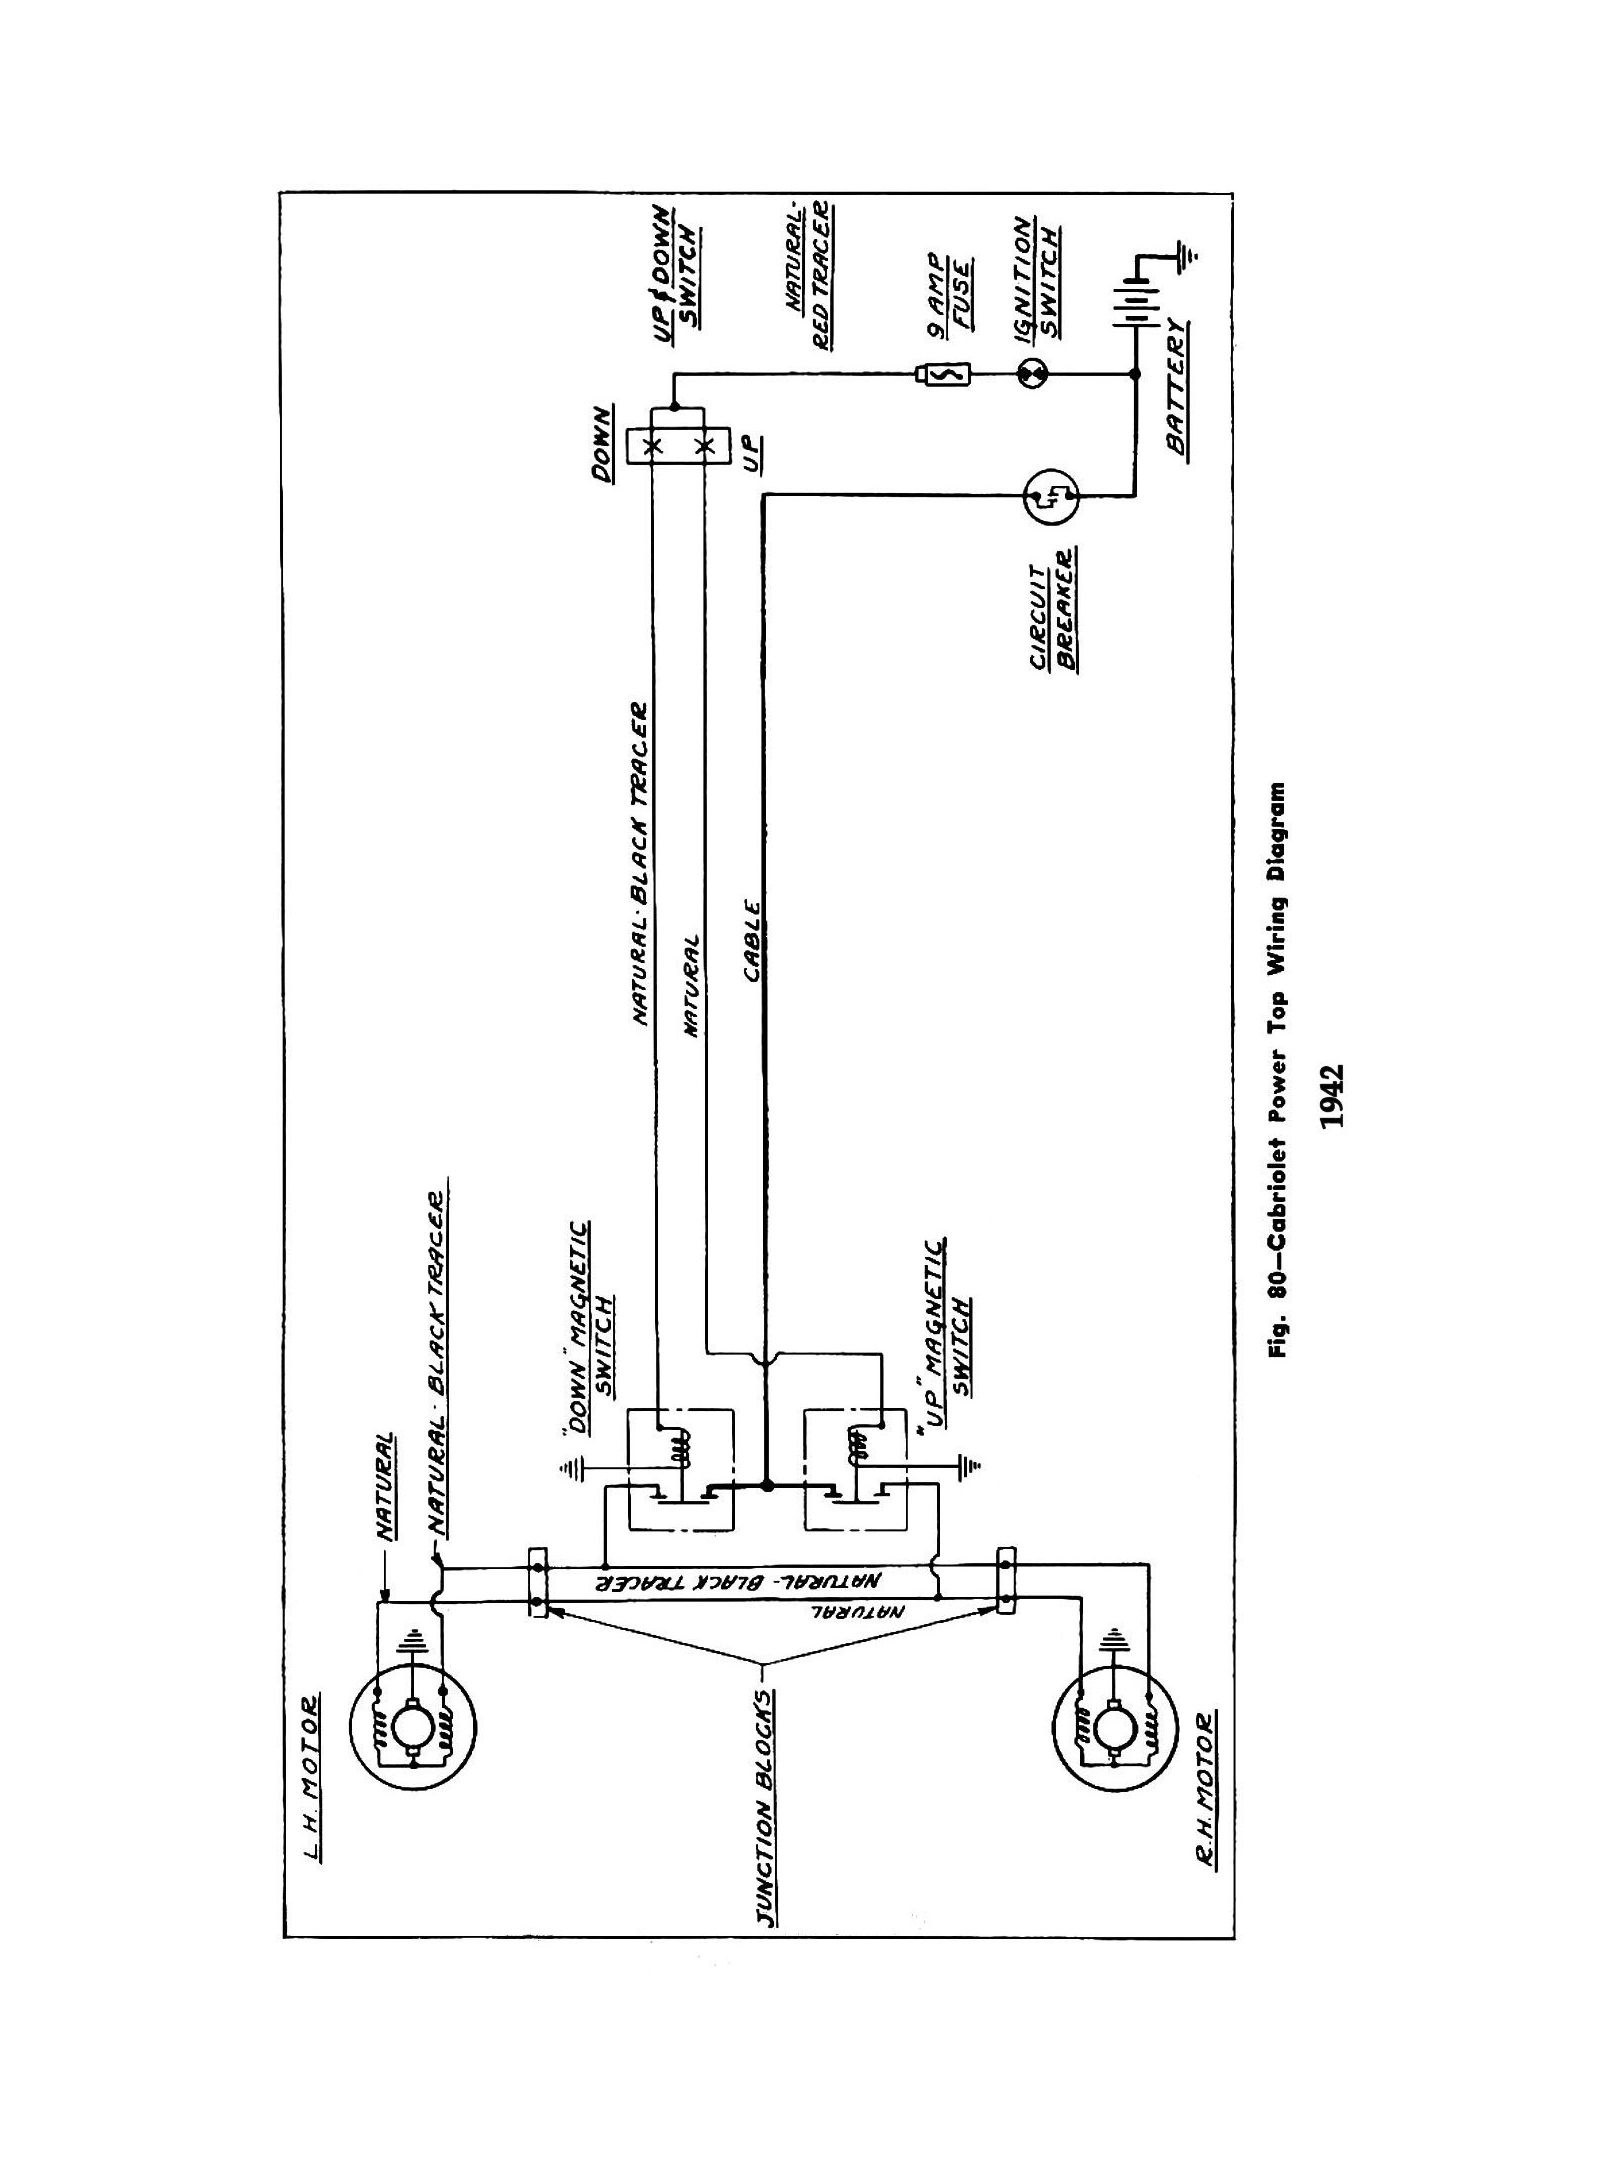 Normally Open Switch Diagram